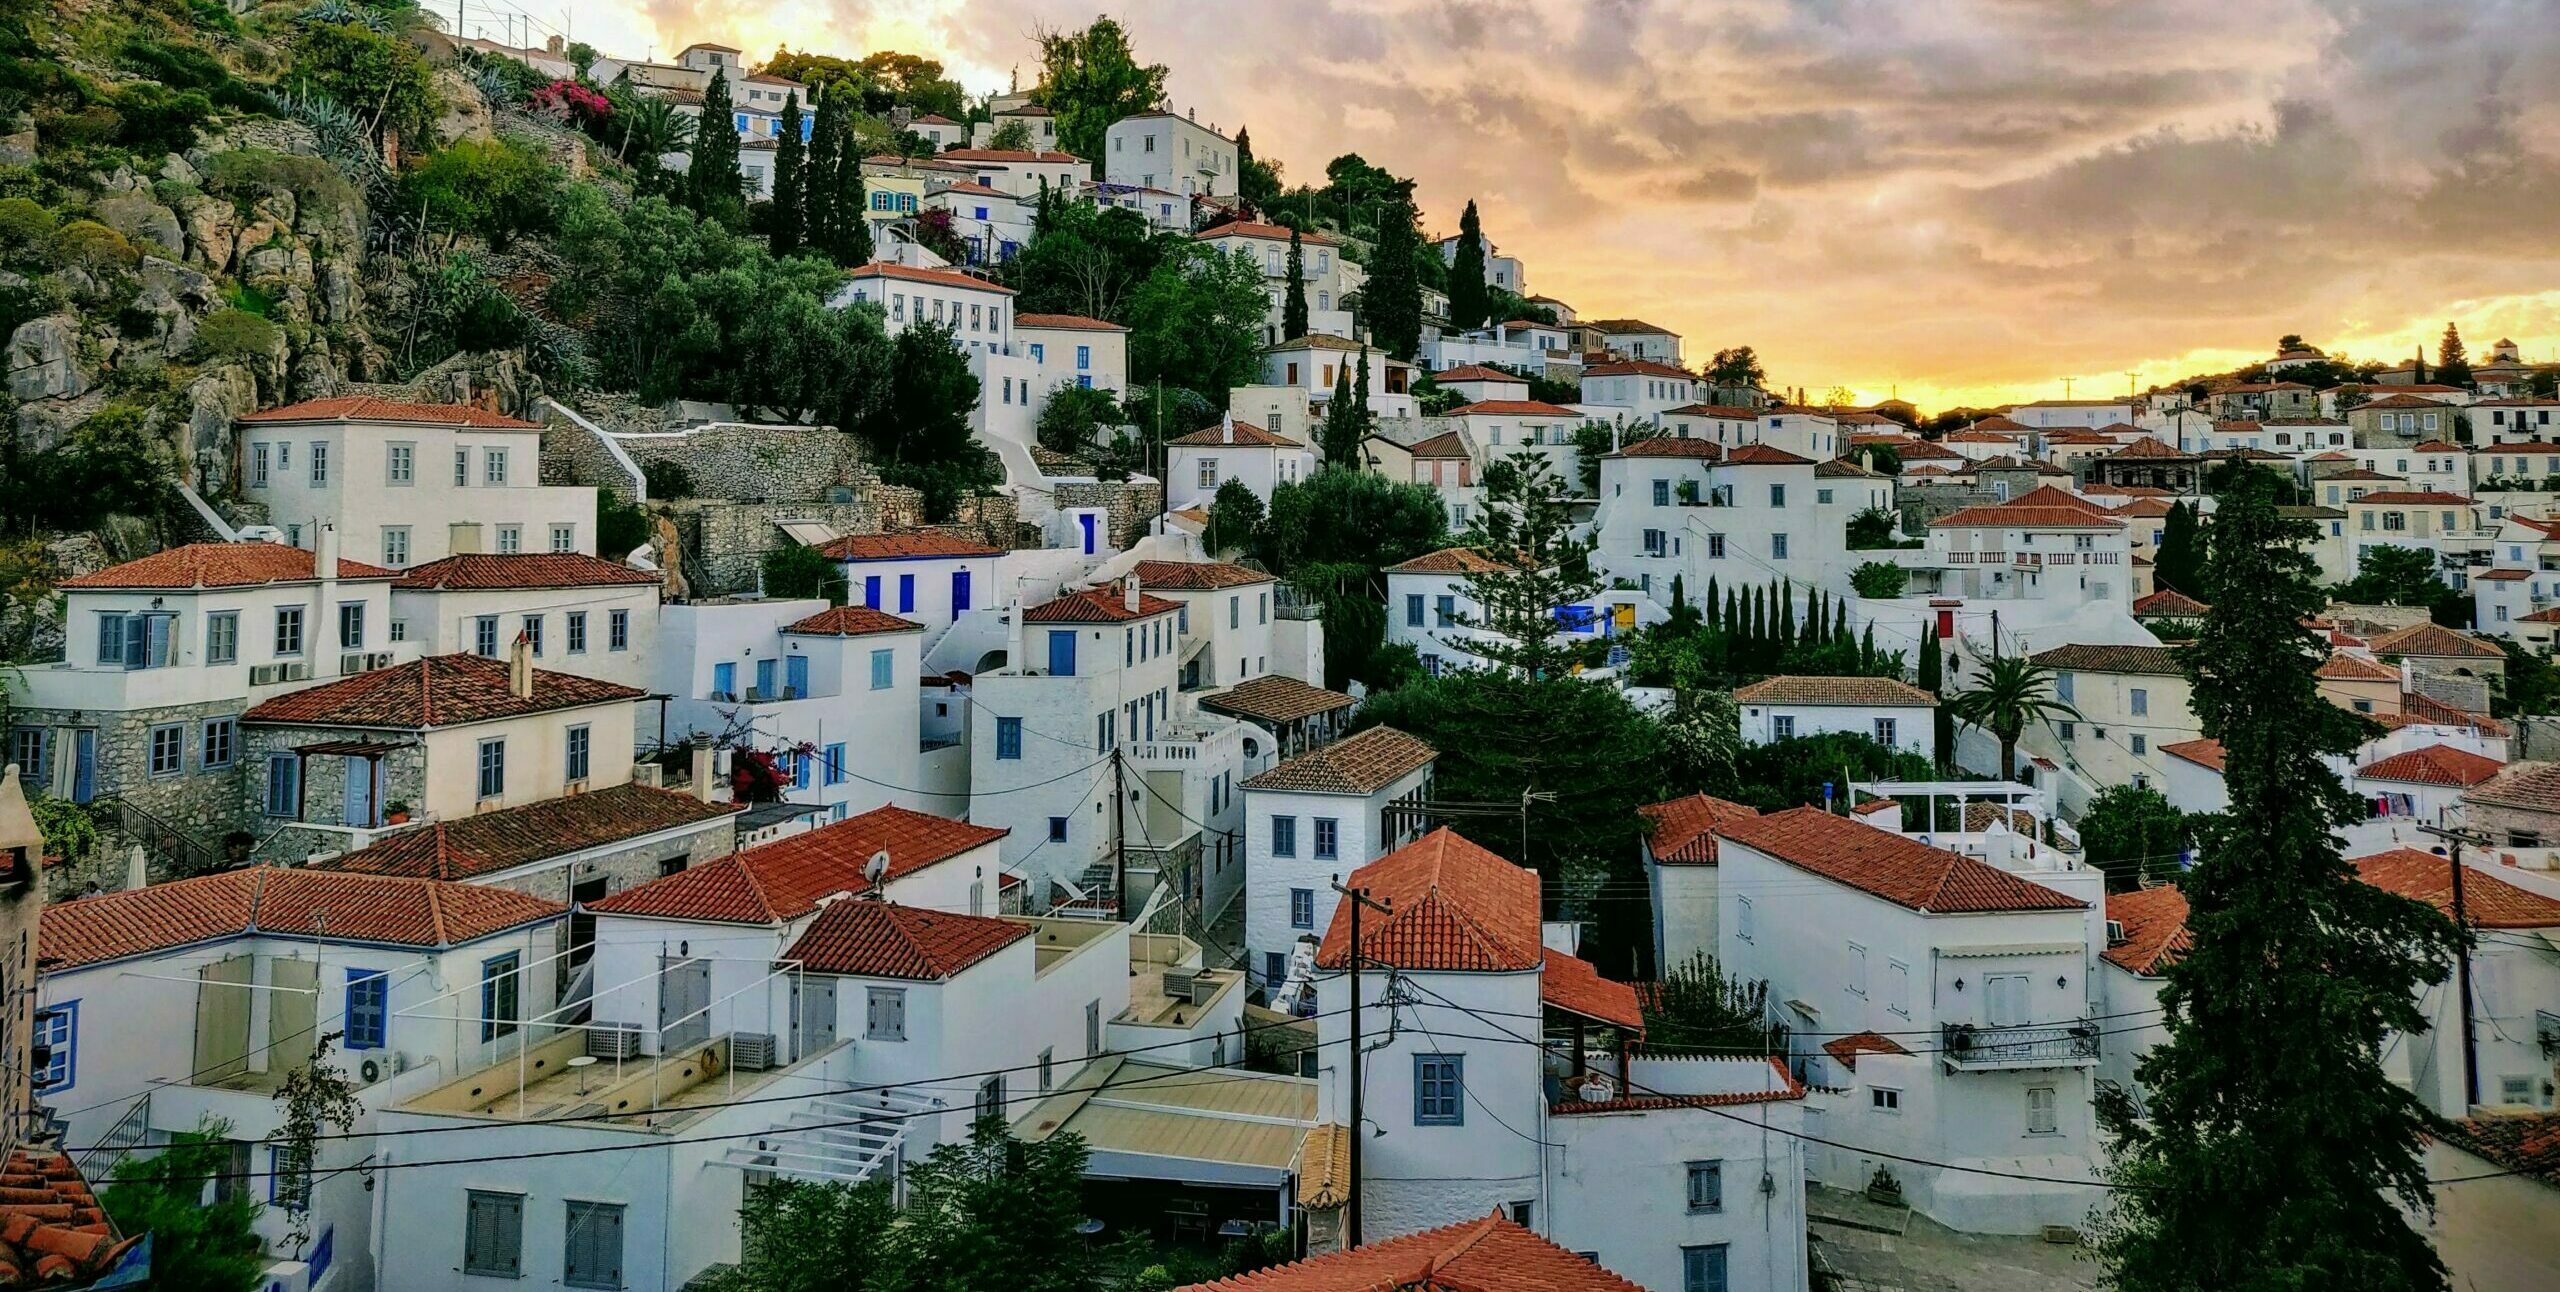 Hydra: The island worth going on an autumn weekend